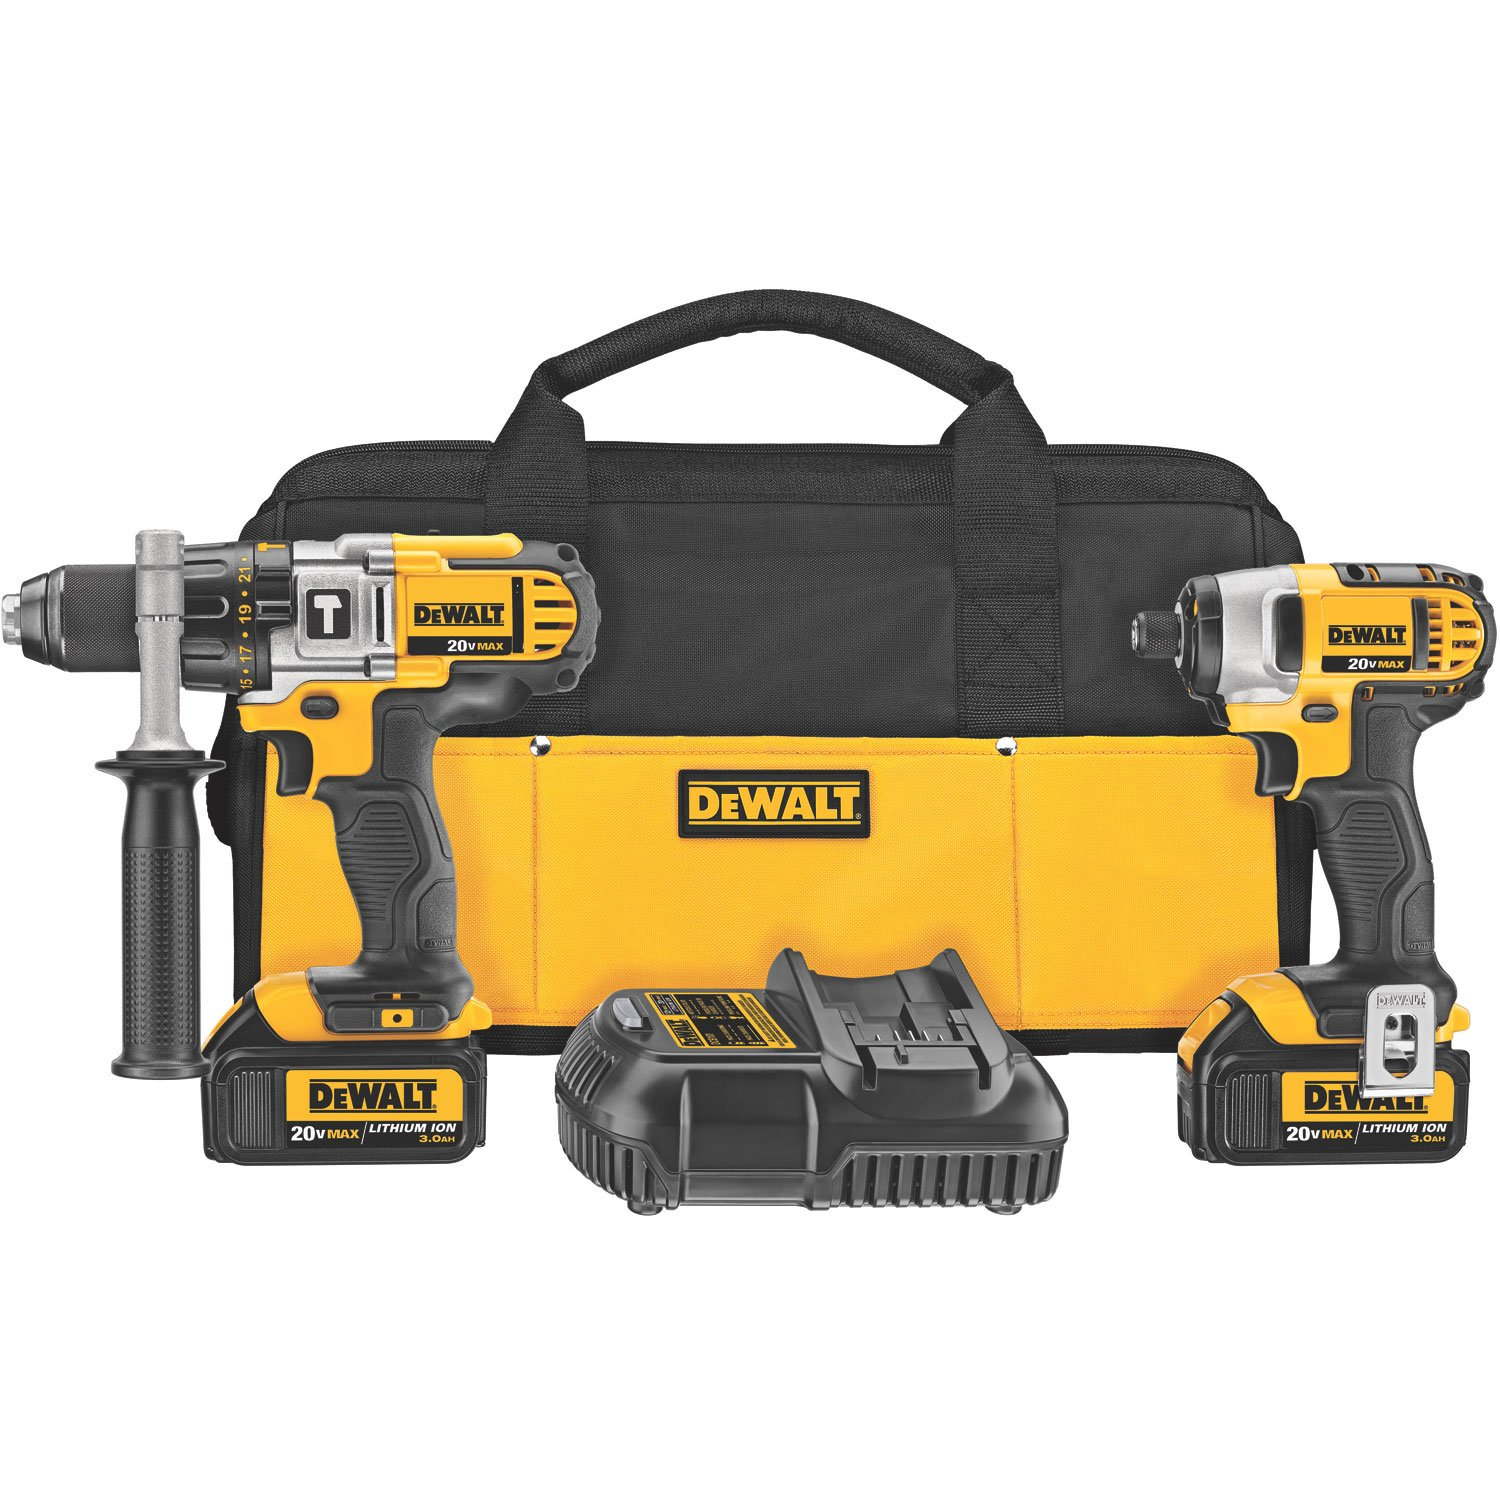 DEWALT 20V MAX Impact Driver and Hammer Drill Combo Kit (DCK290L2)